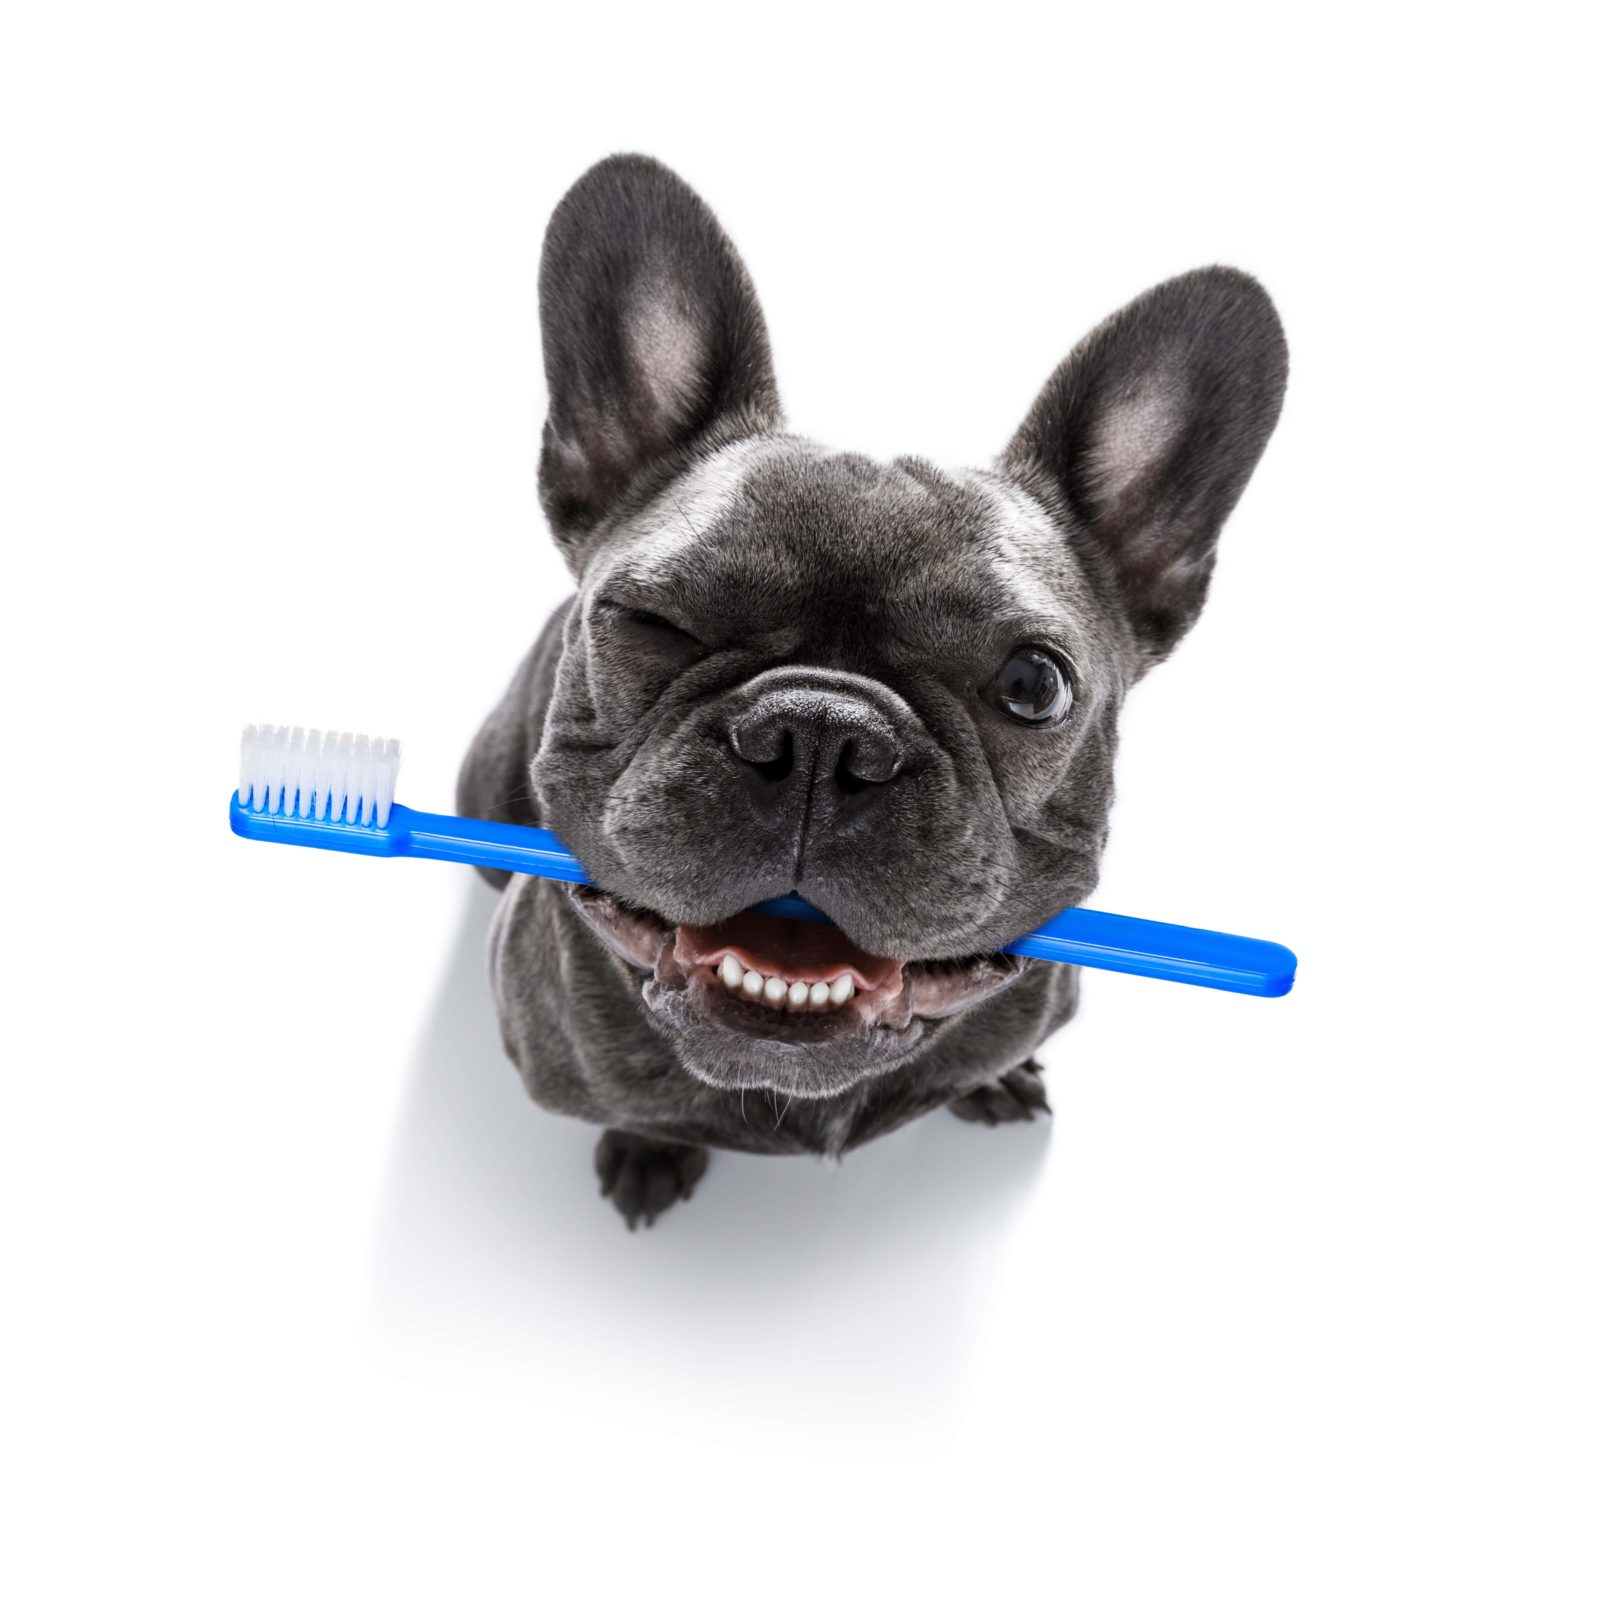 french bulldog with toothbrush in his mouth